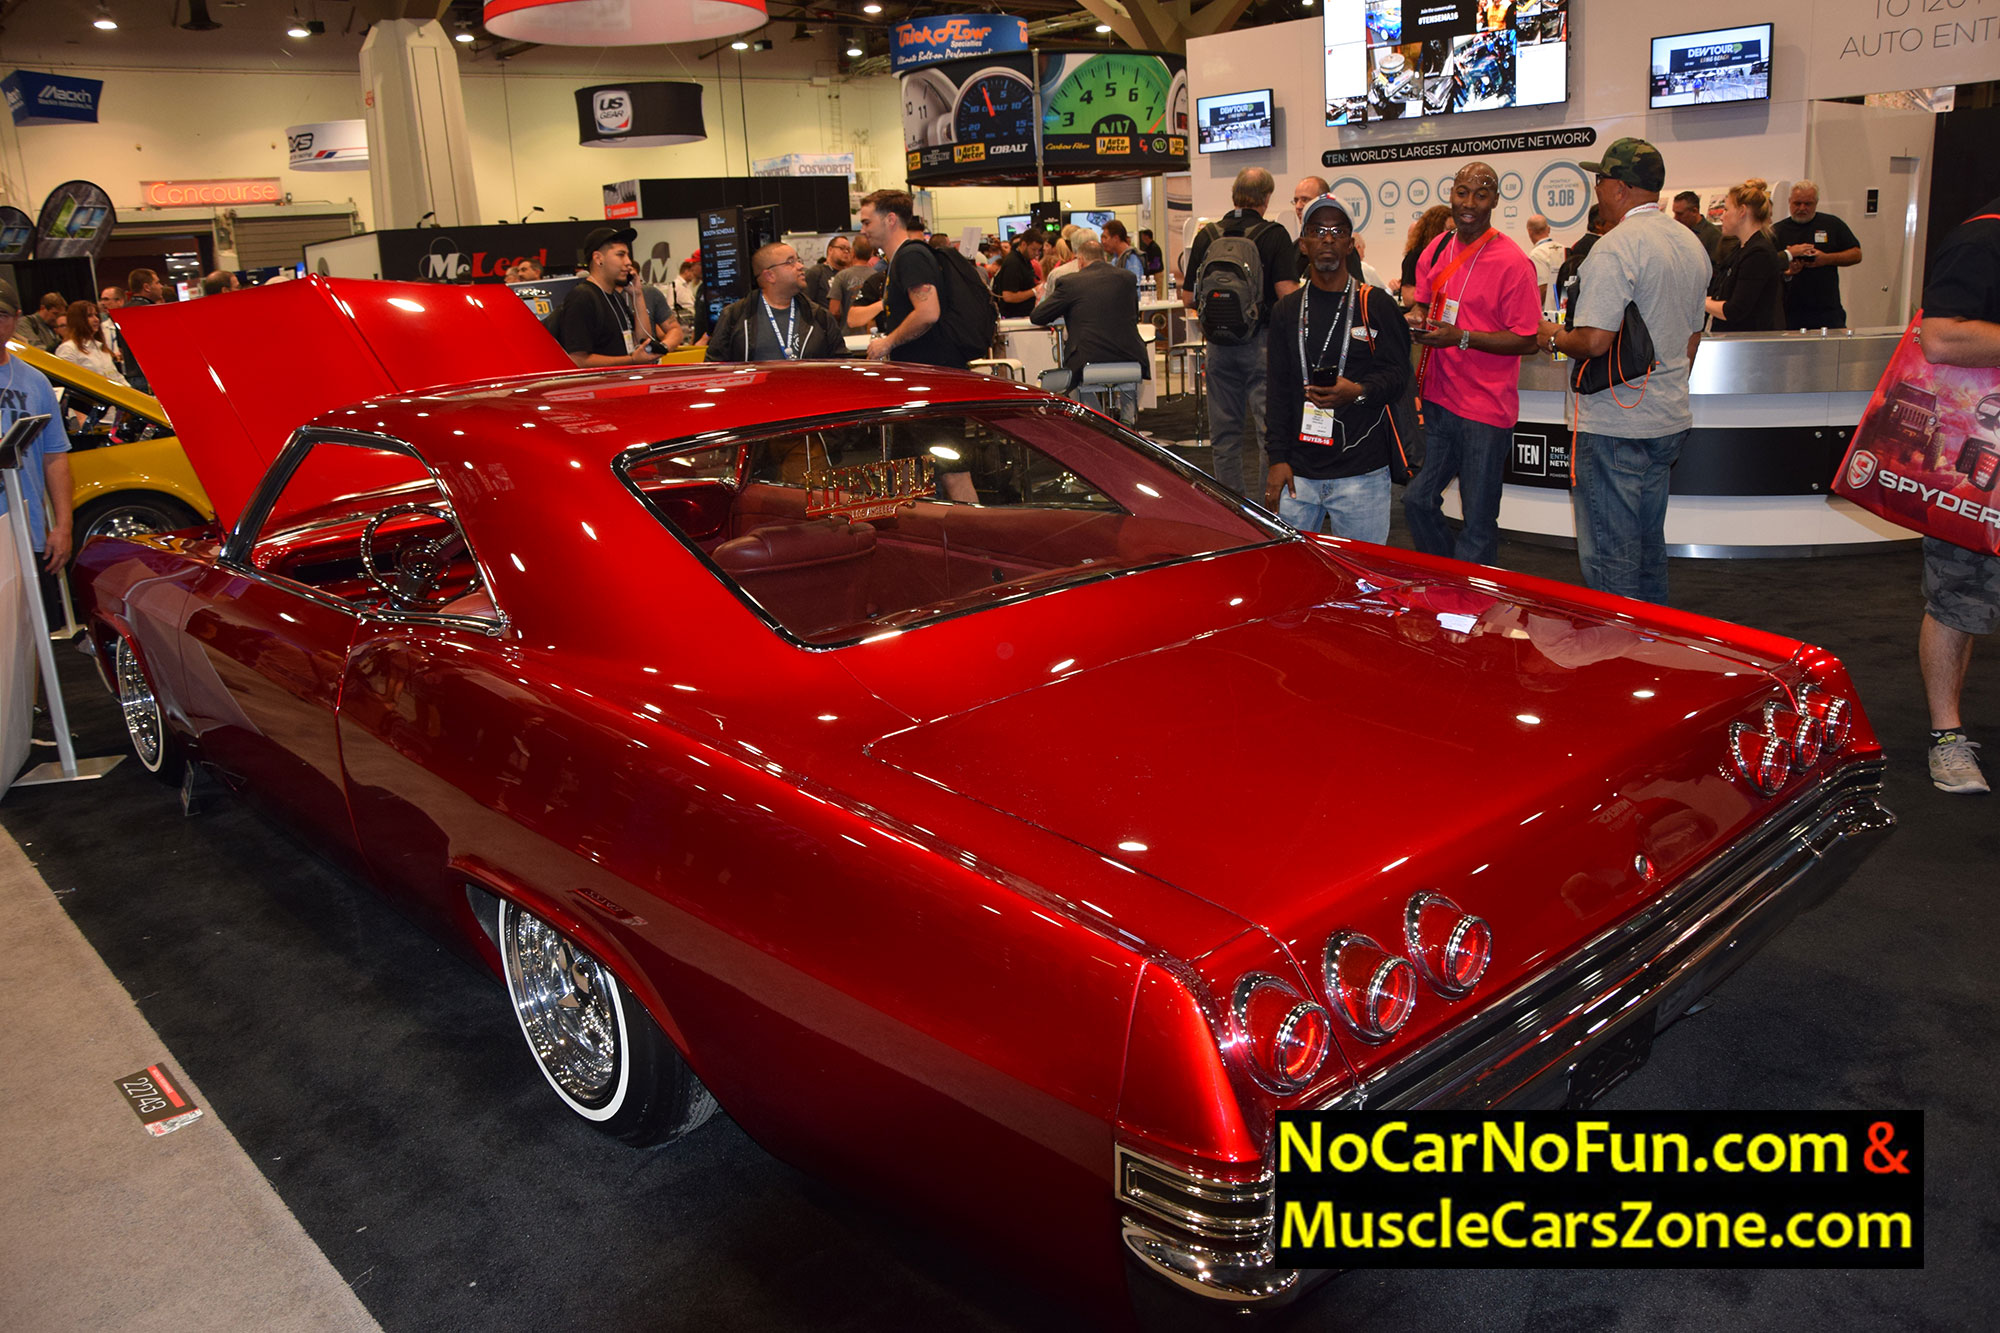 Red Chevrolet Chevelle 5 - Sema Show 2016 Vegas - Muscle Cars Zone!